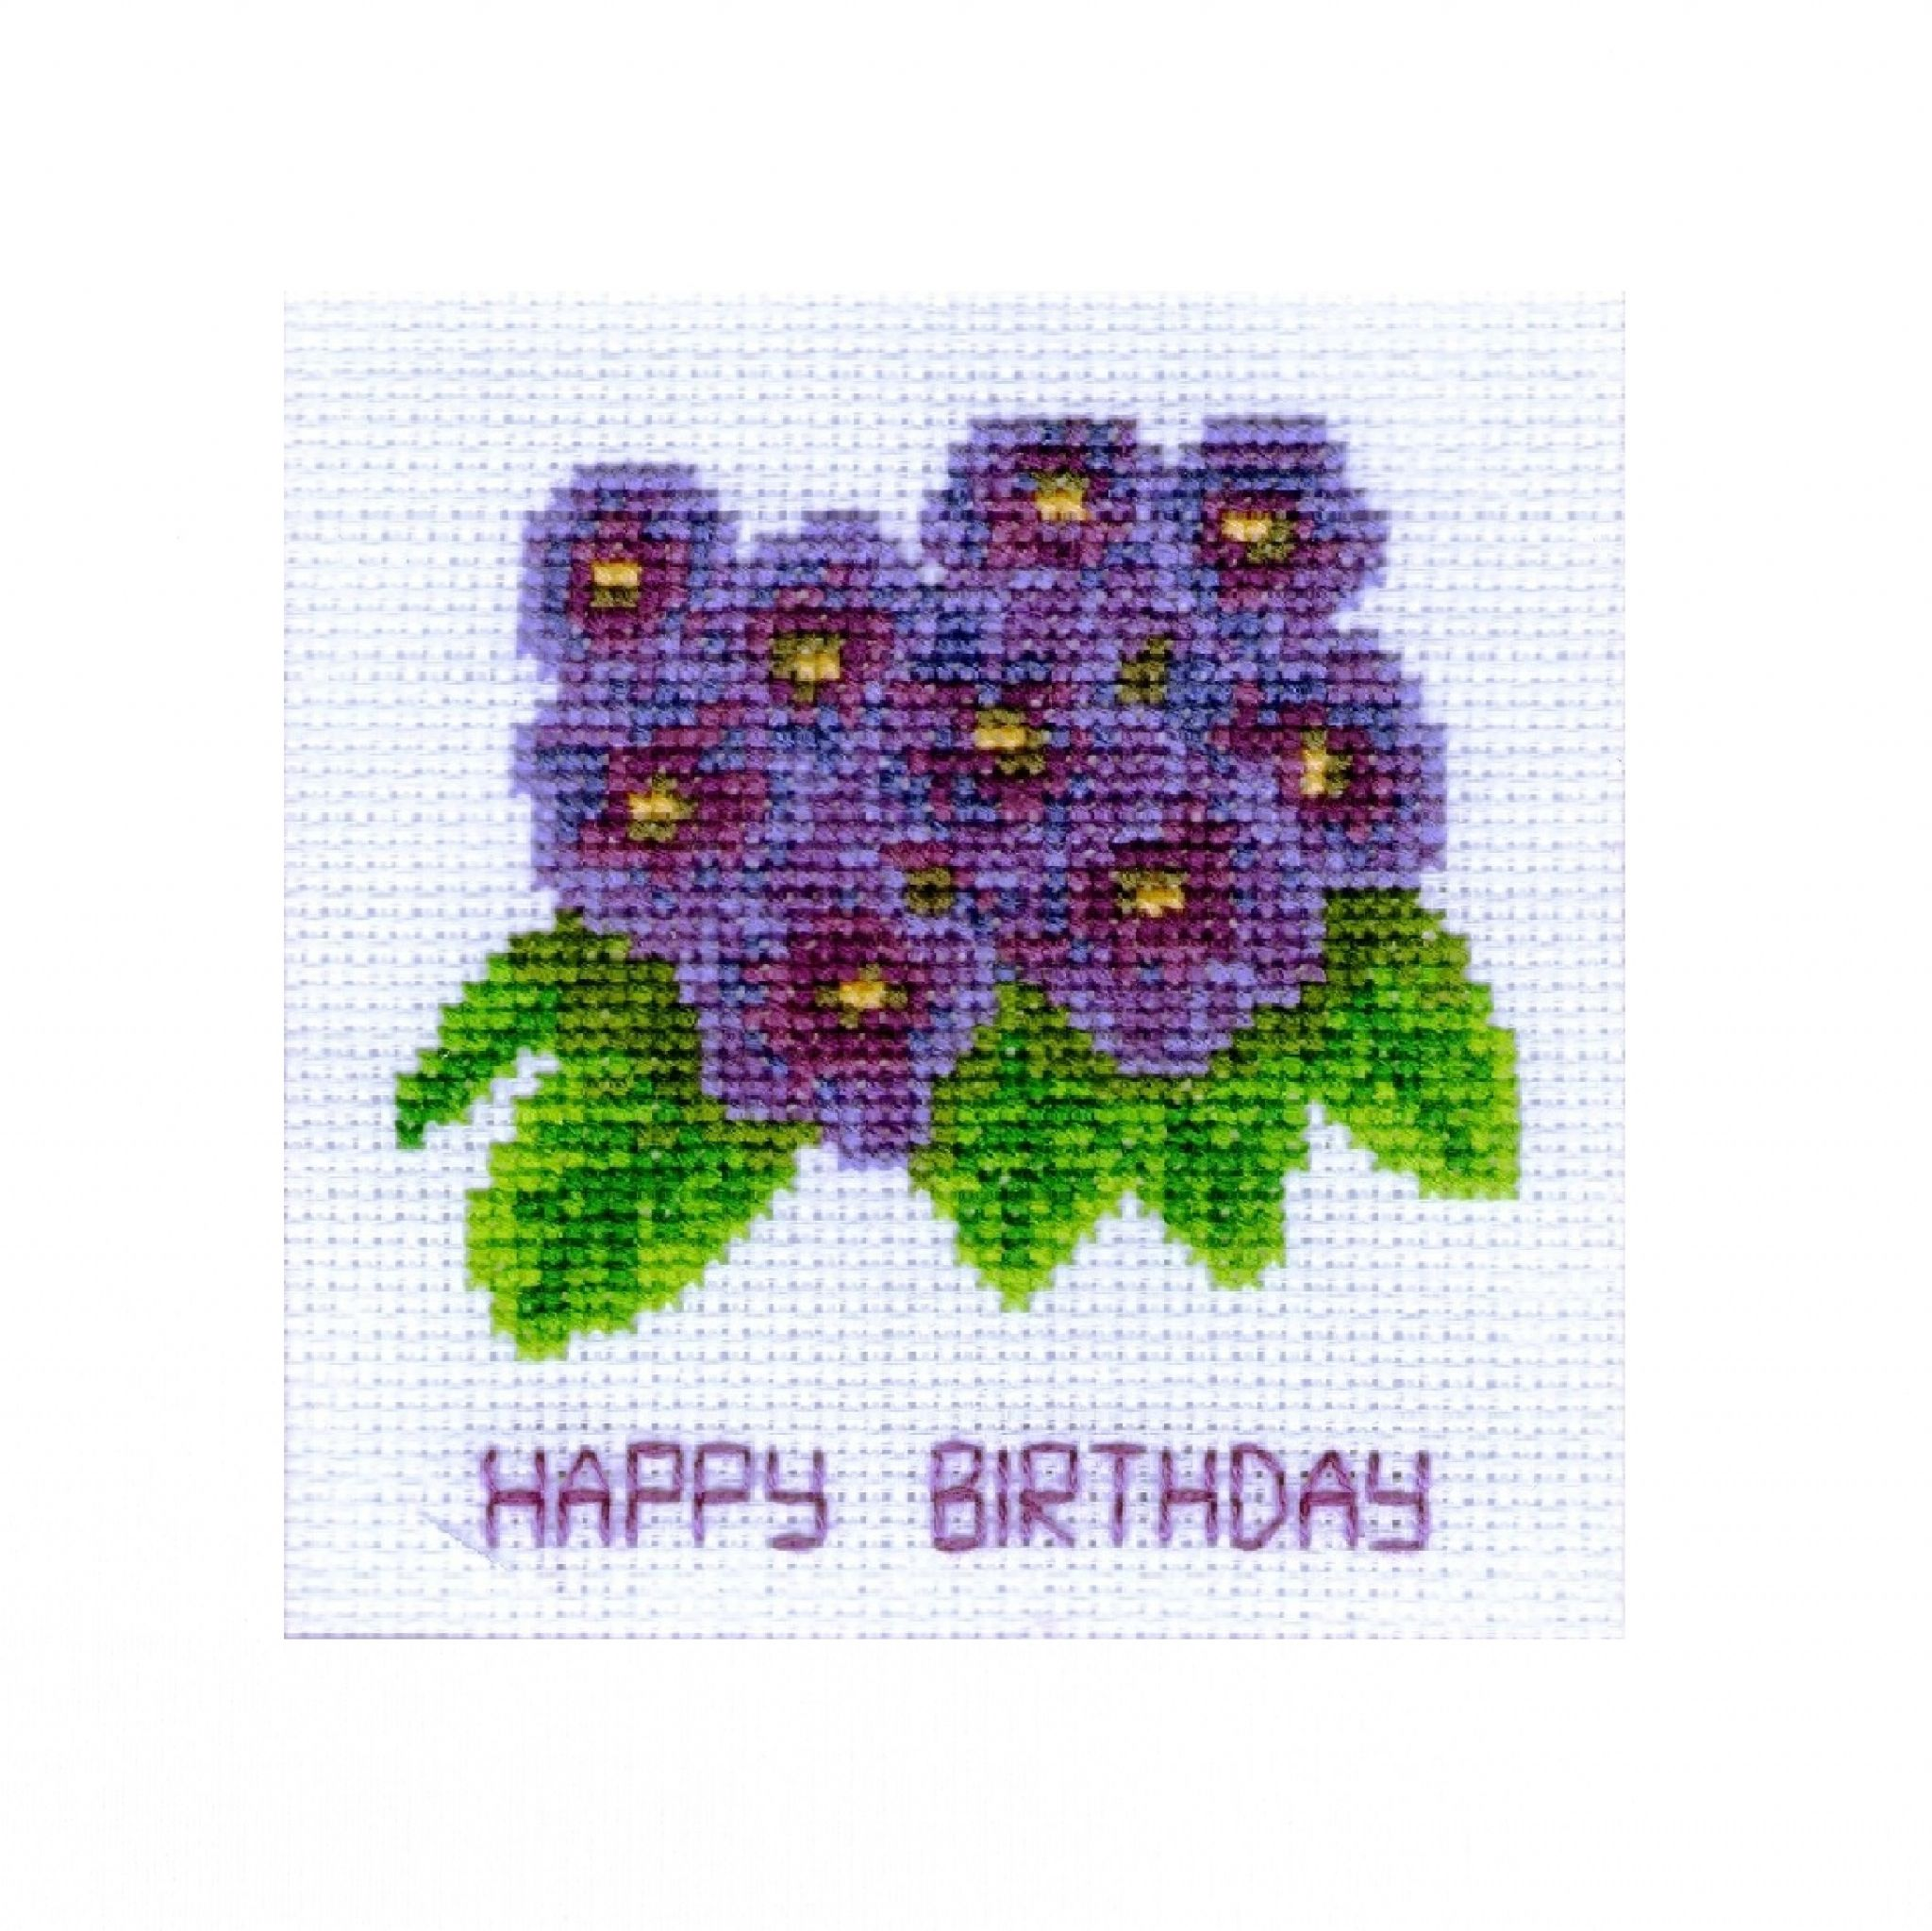 Flowers Happy Easter card a complete cross stitch kit with COLOUR chart